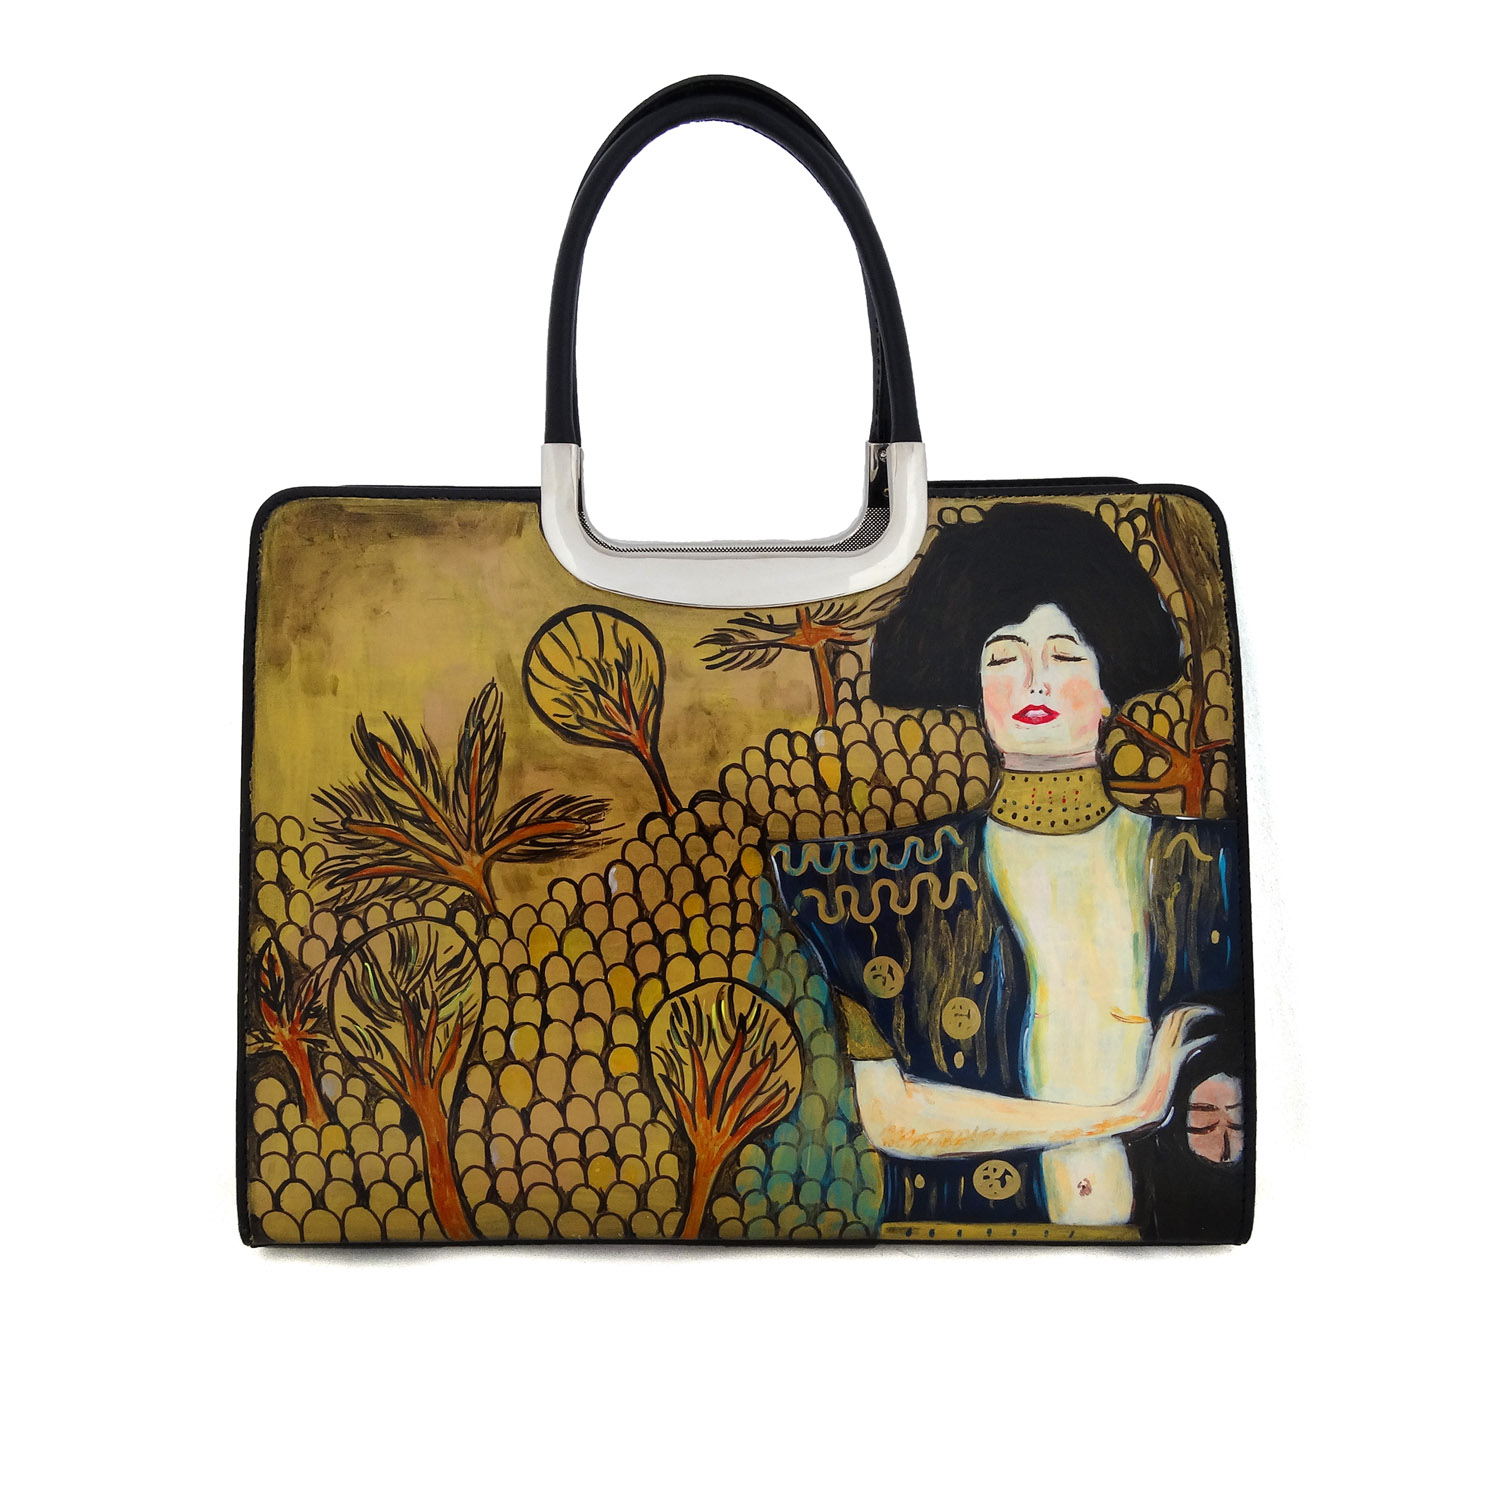 Hand painted bag - Judith by Klimt